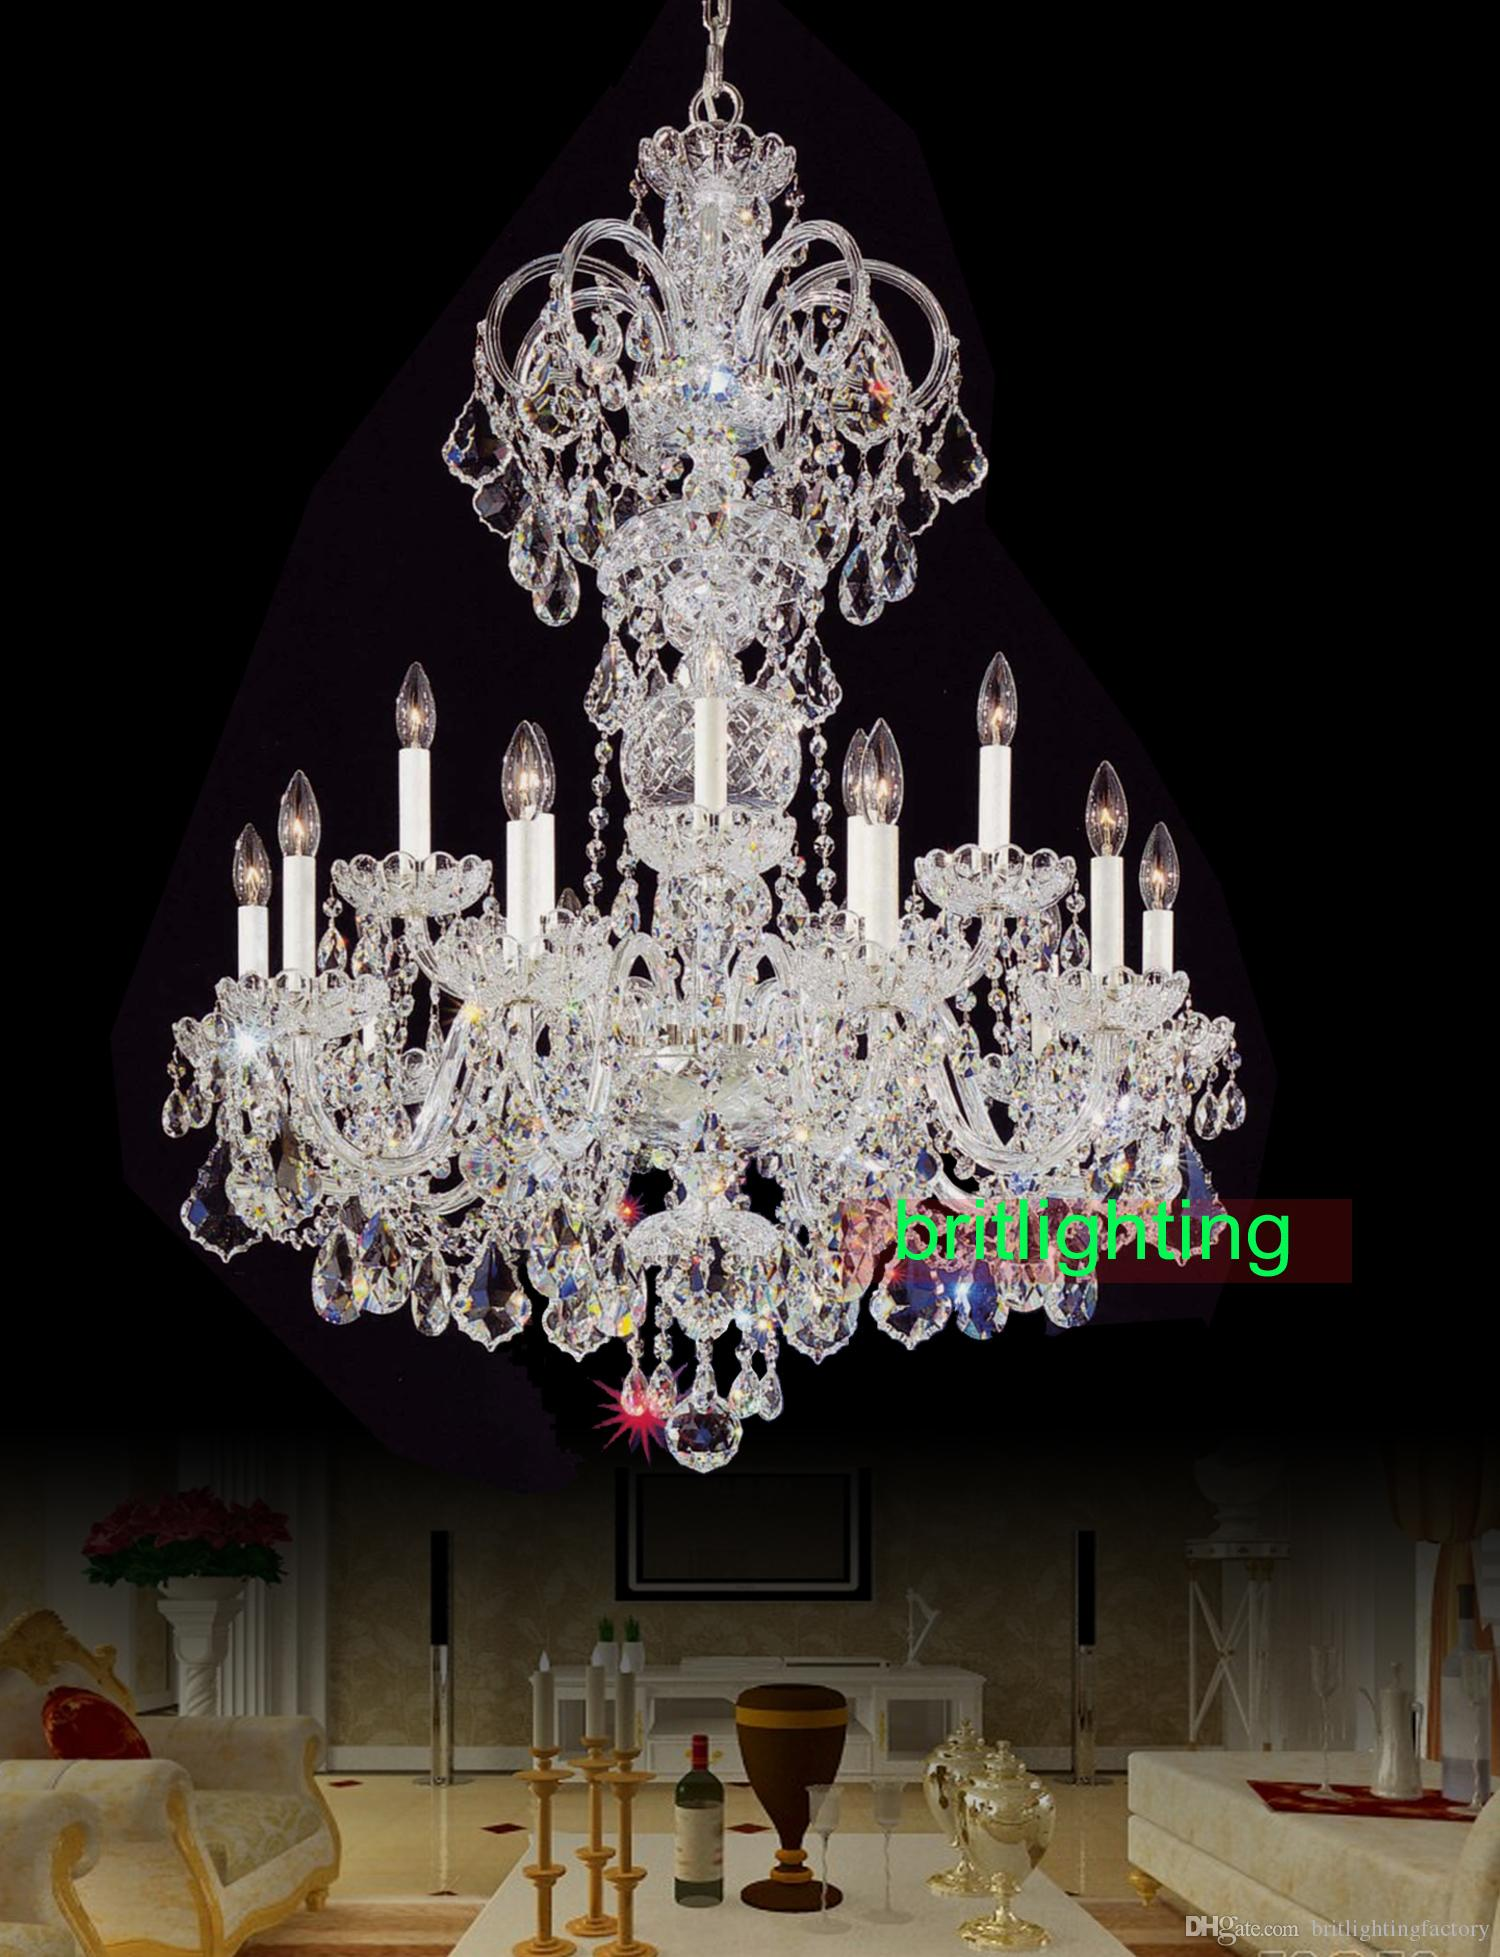 candle decorative modern pendant lamp. discount modern big chandelier lamps european candle chandeliers versailles lights home lighting decoration bohemian crystal with crystals lamp decorative pendant c